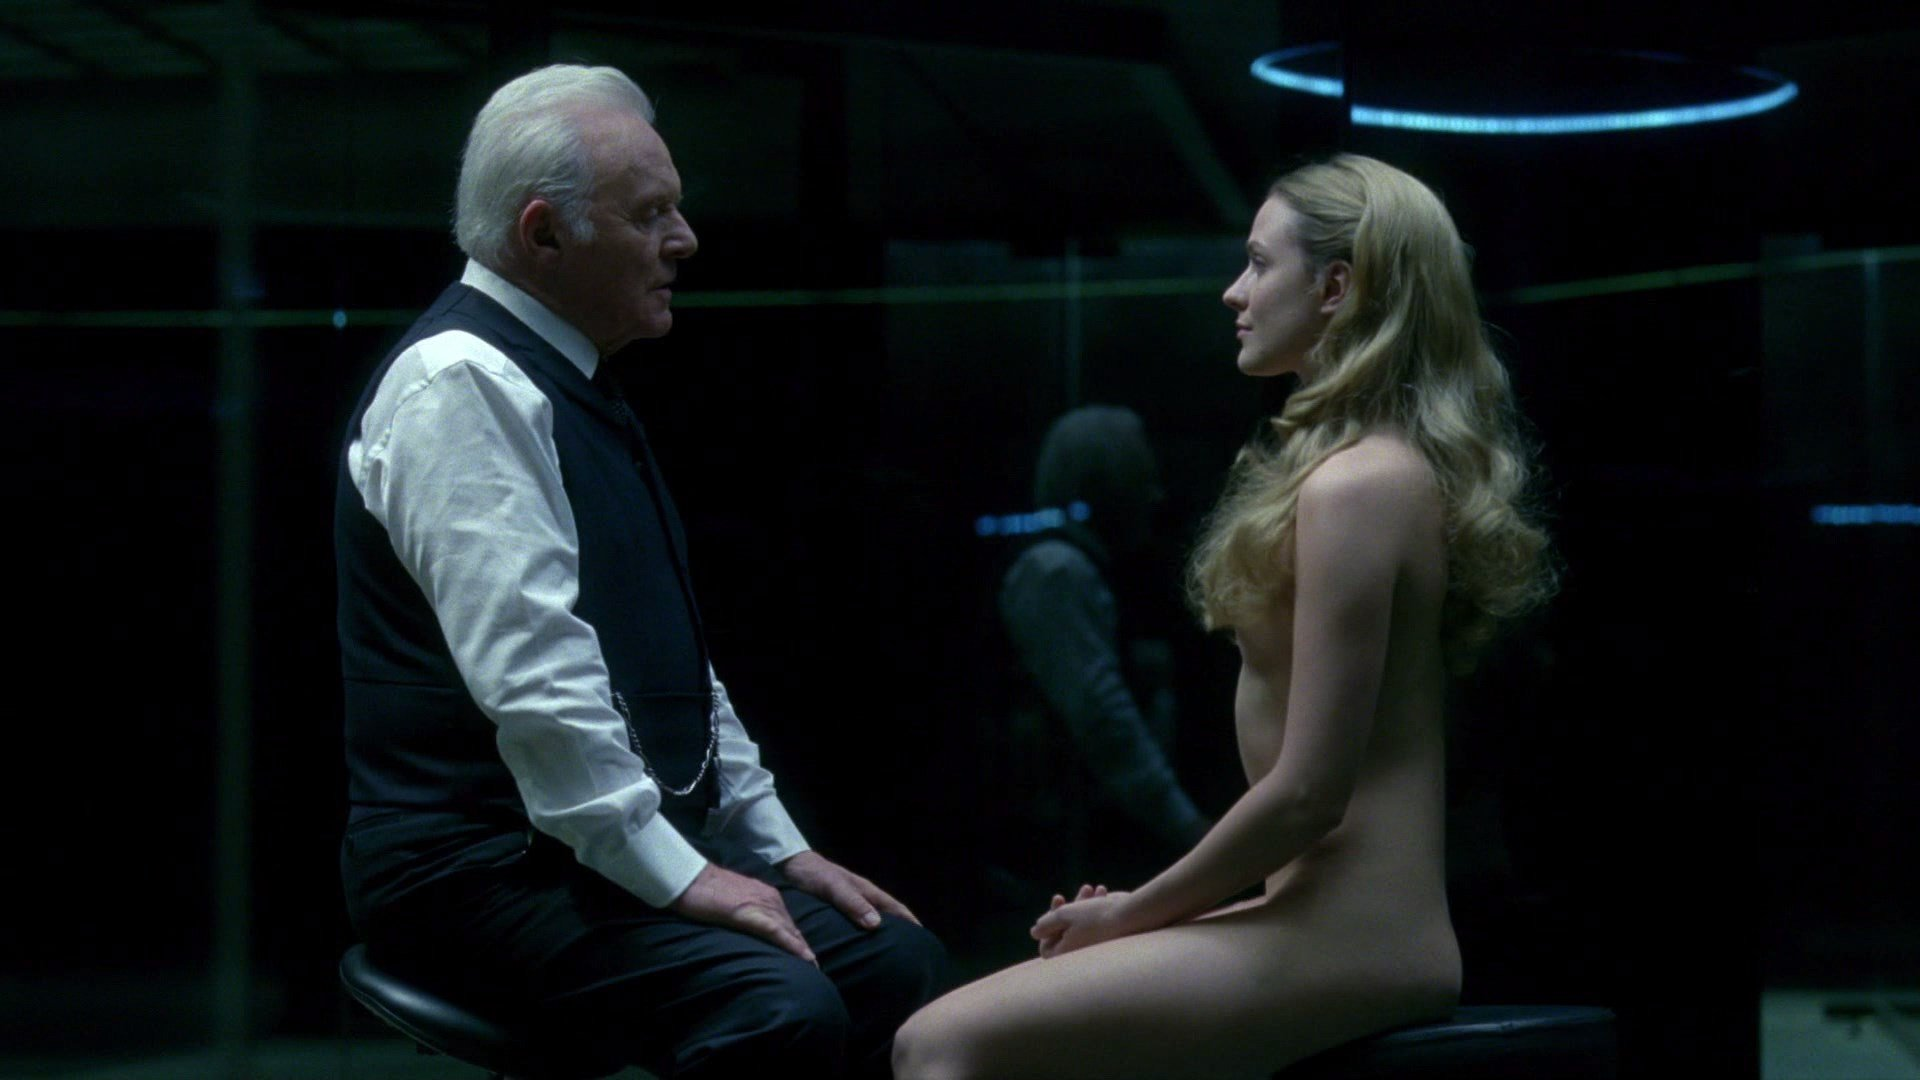 Dolores westworld actress nude